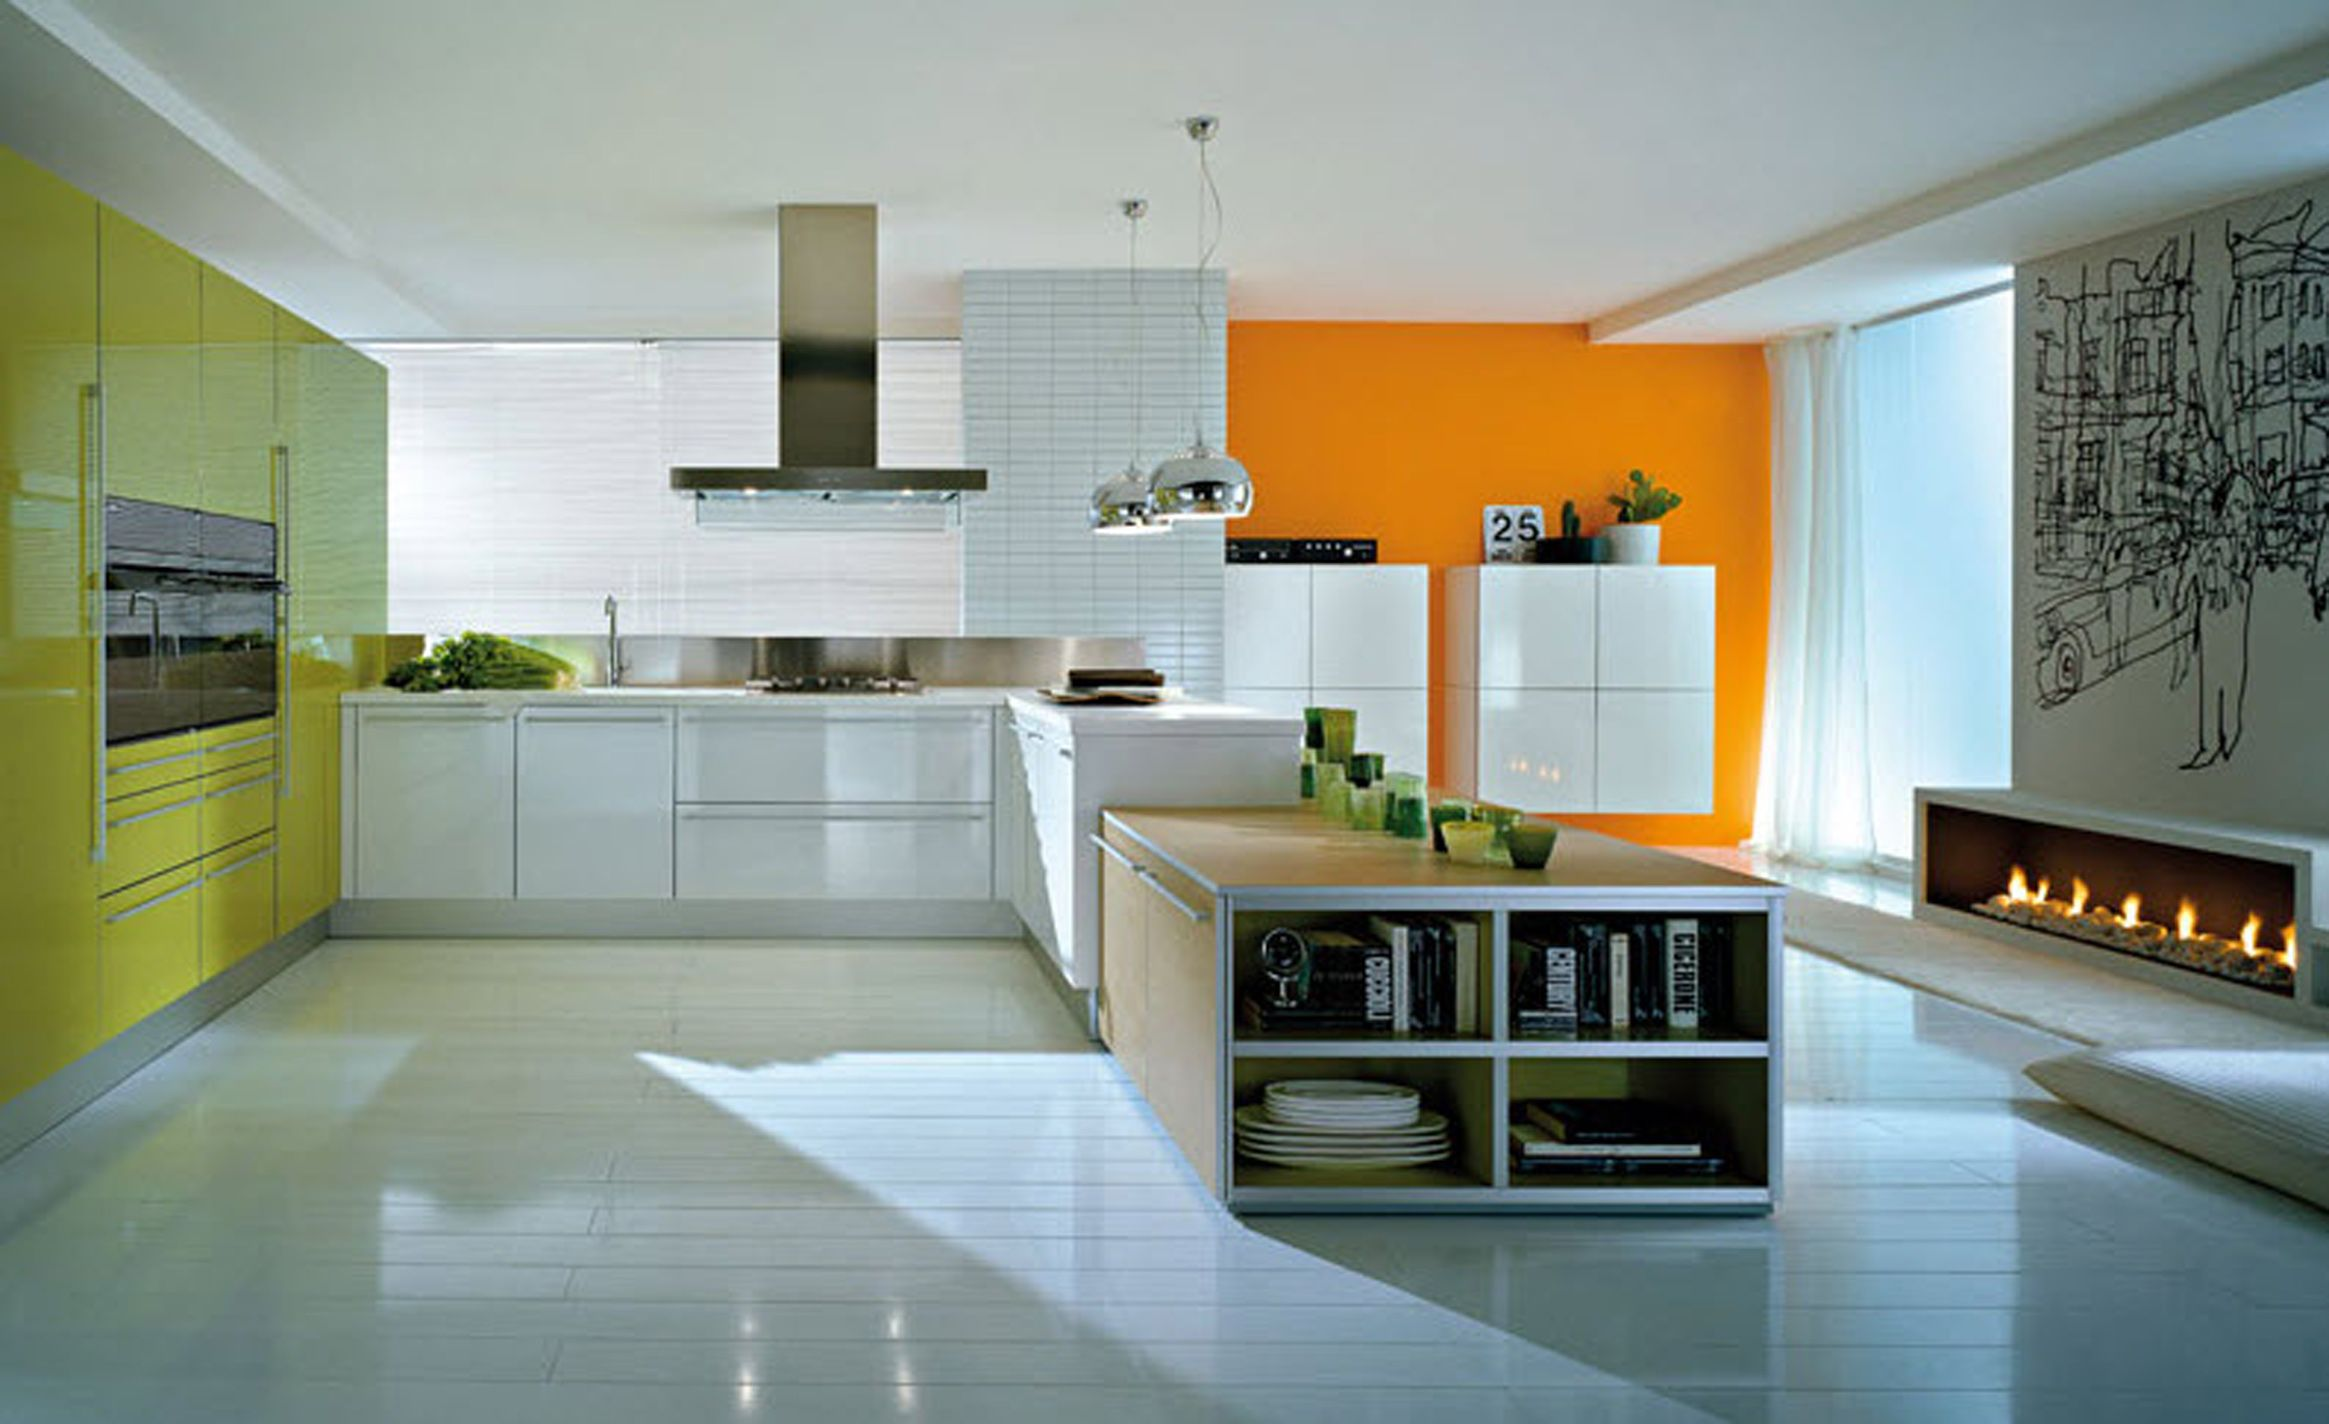 white kitchen designs ideas gallery kitchen design ideas small ...